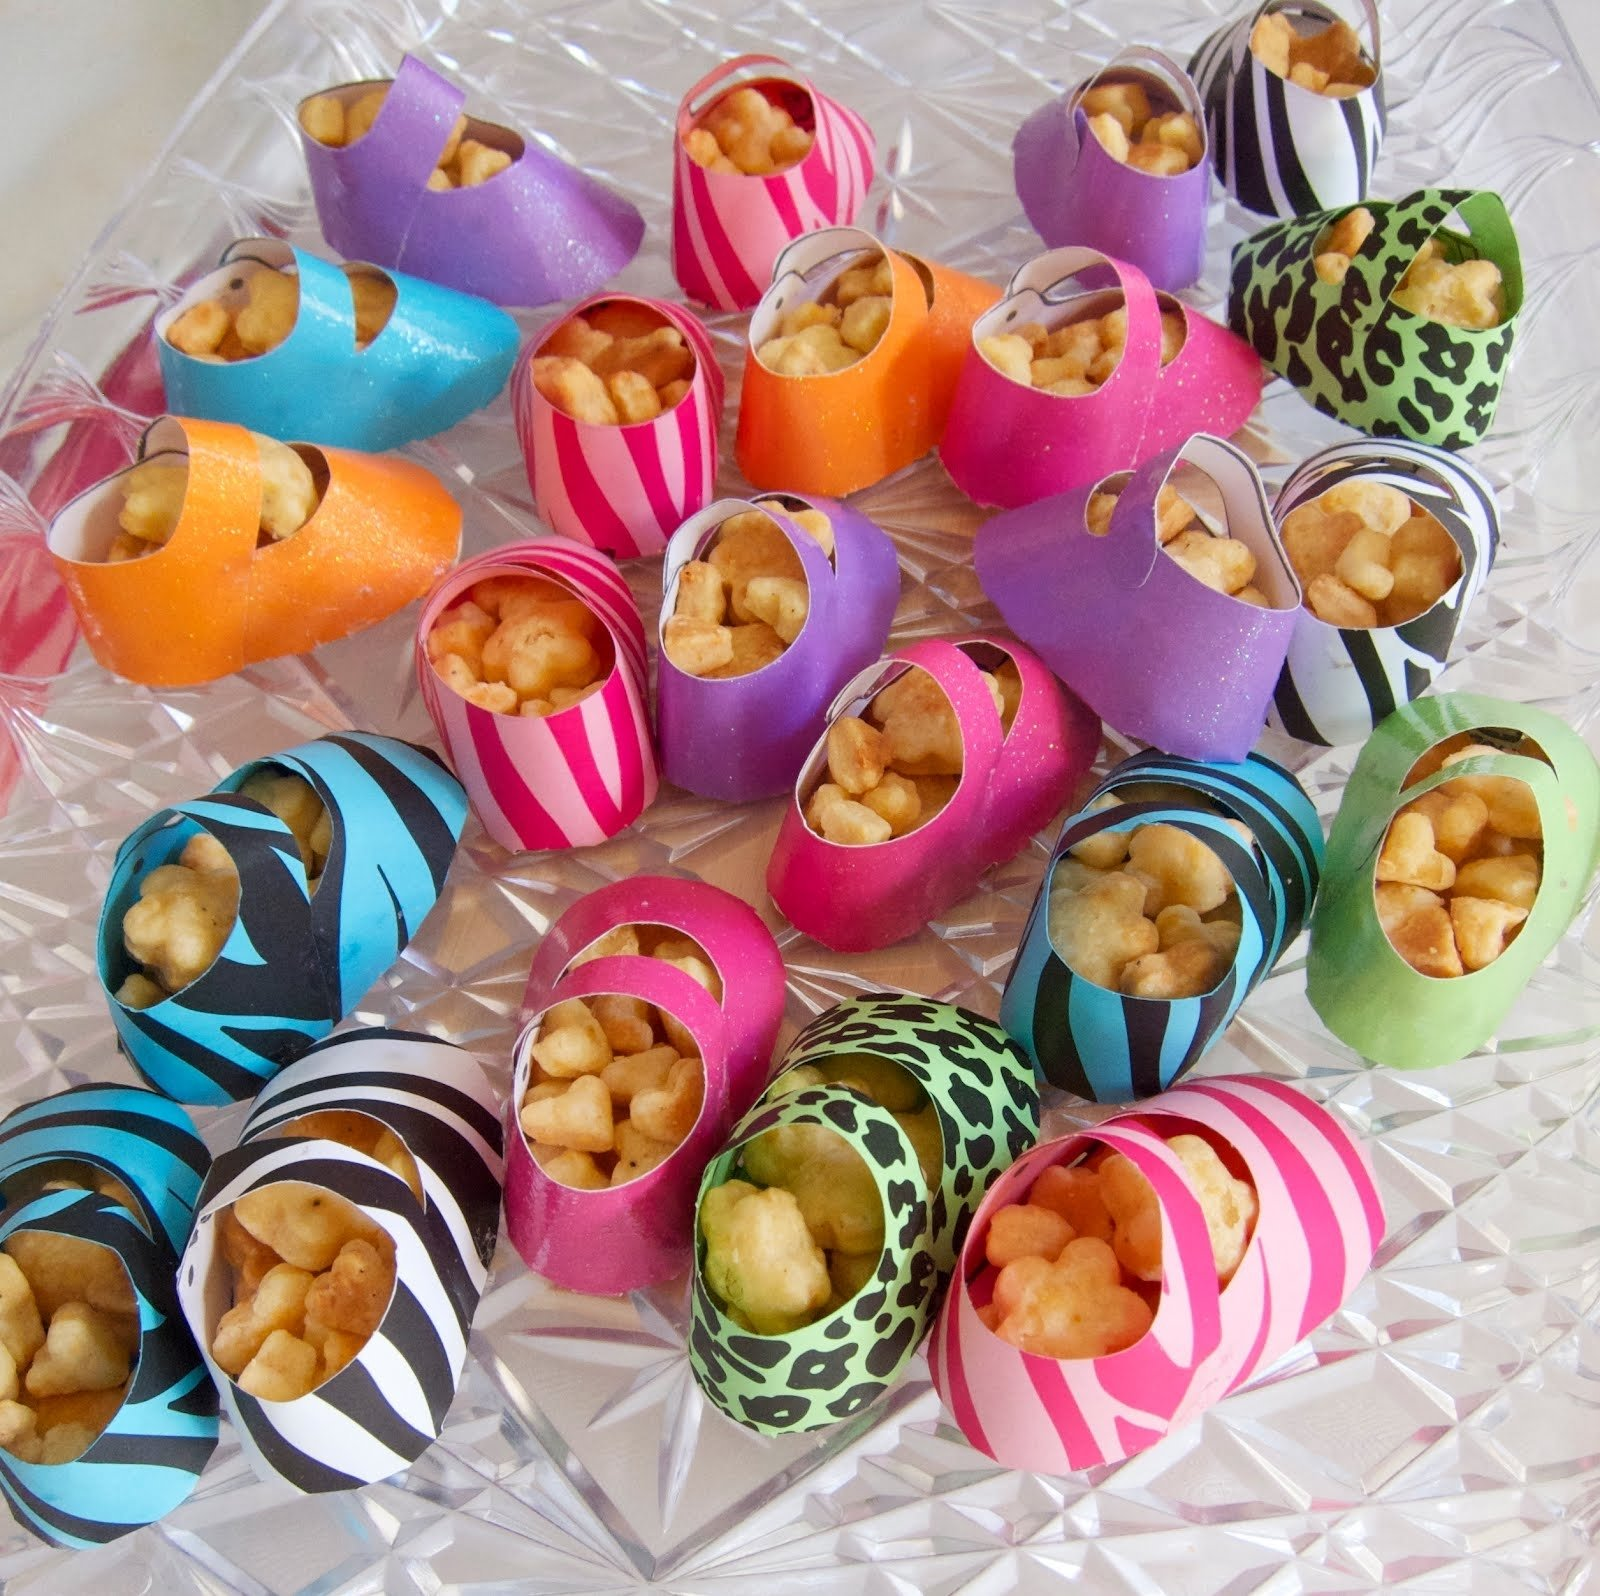 10 Fabulous Baby Shower Food Ideas For Girls baby shower food ideas for girl wedding 2020